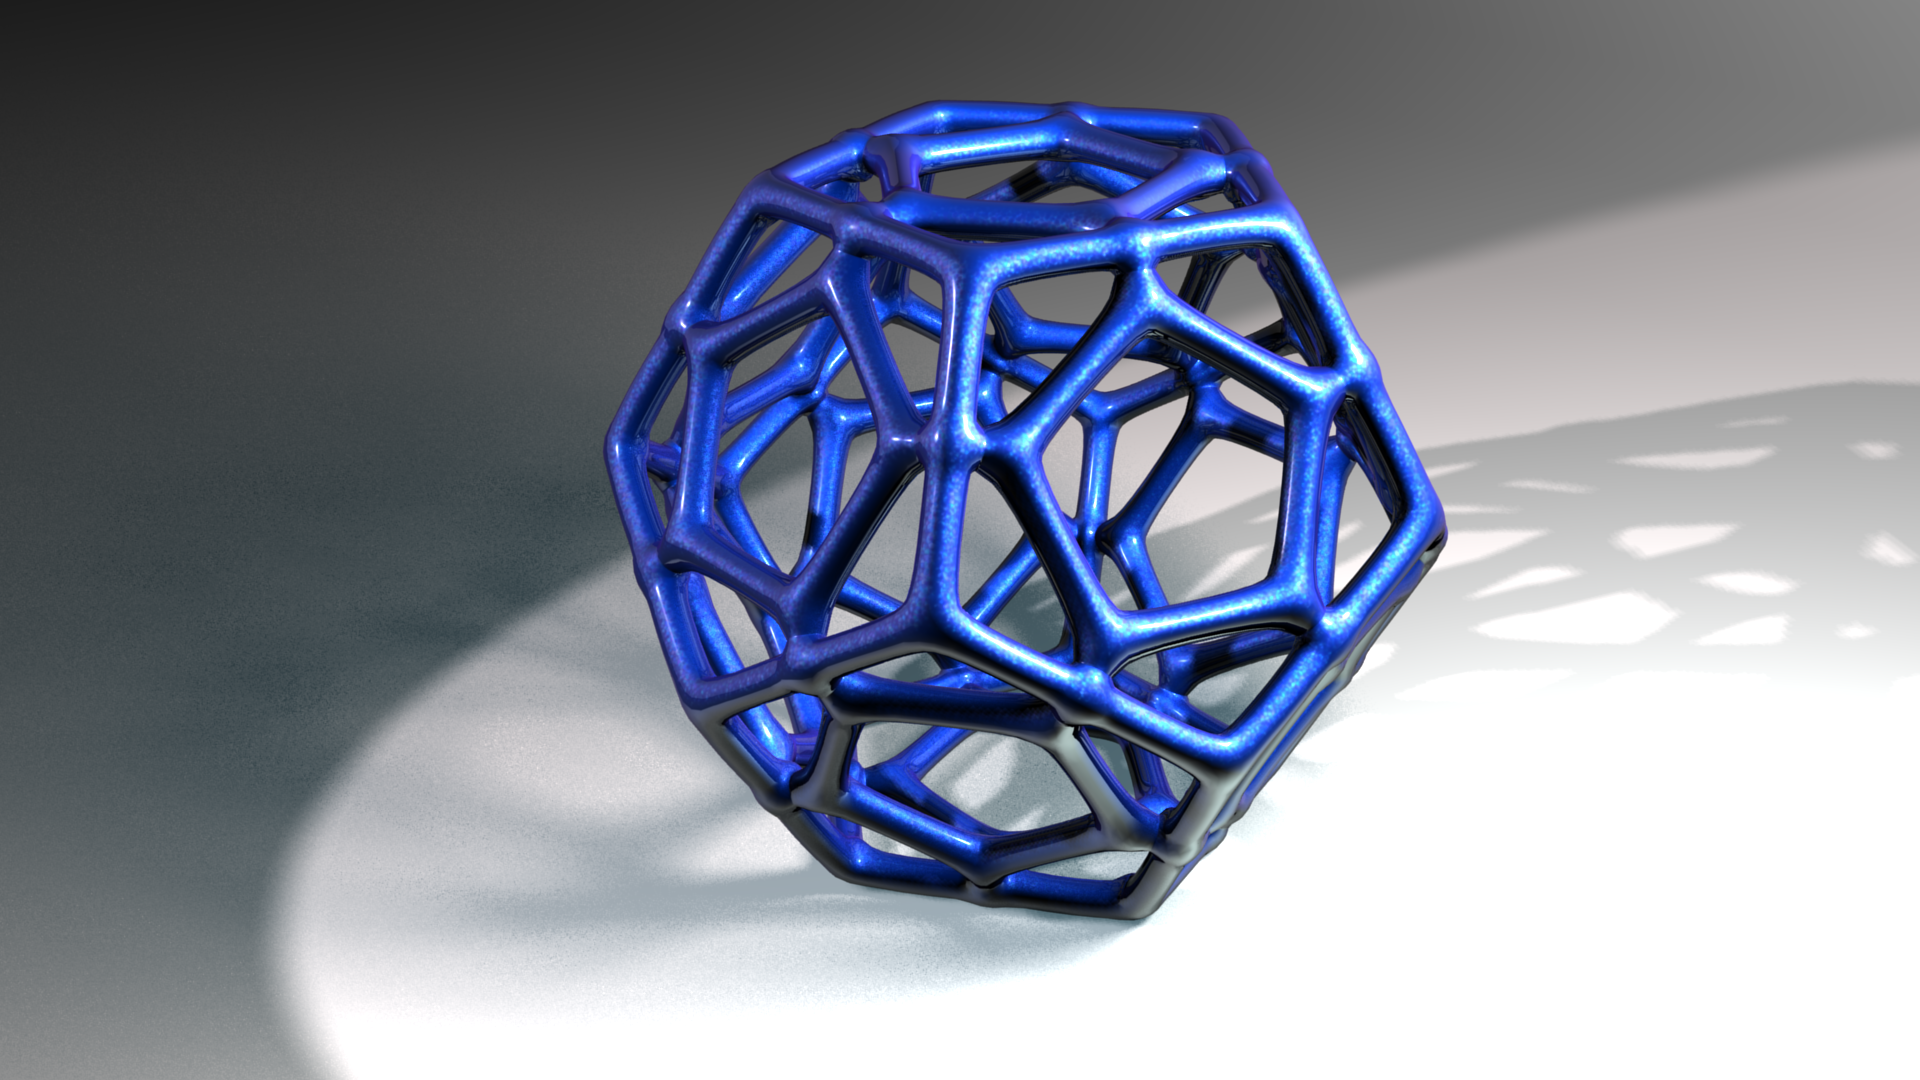 Dodecahedra